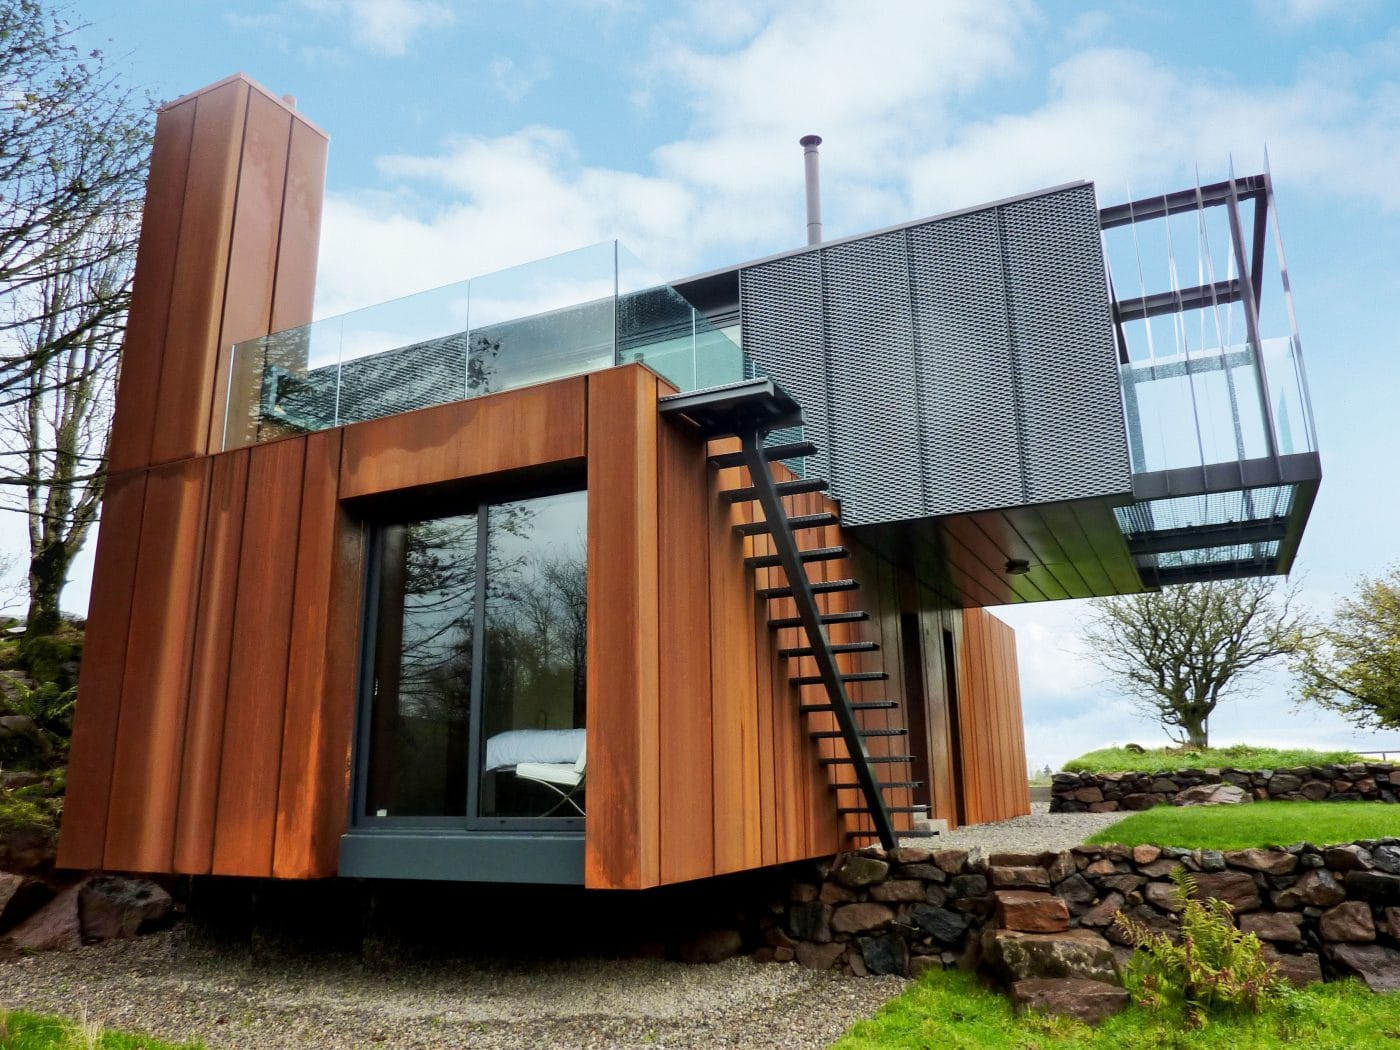 Grand Designs - Shipping Container Home by Patrick Bradley